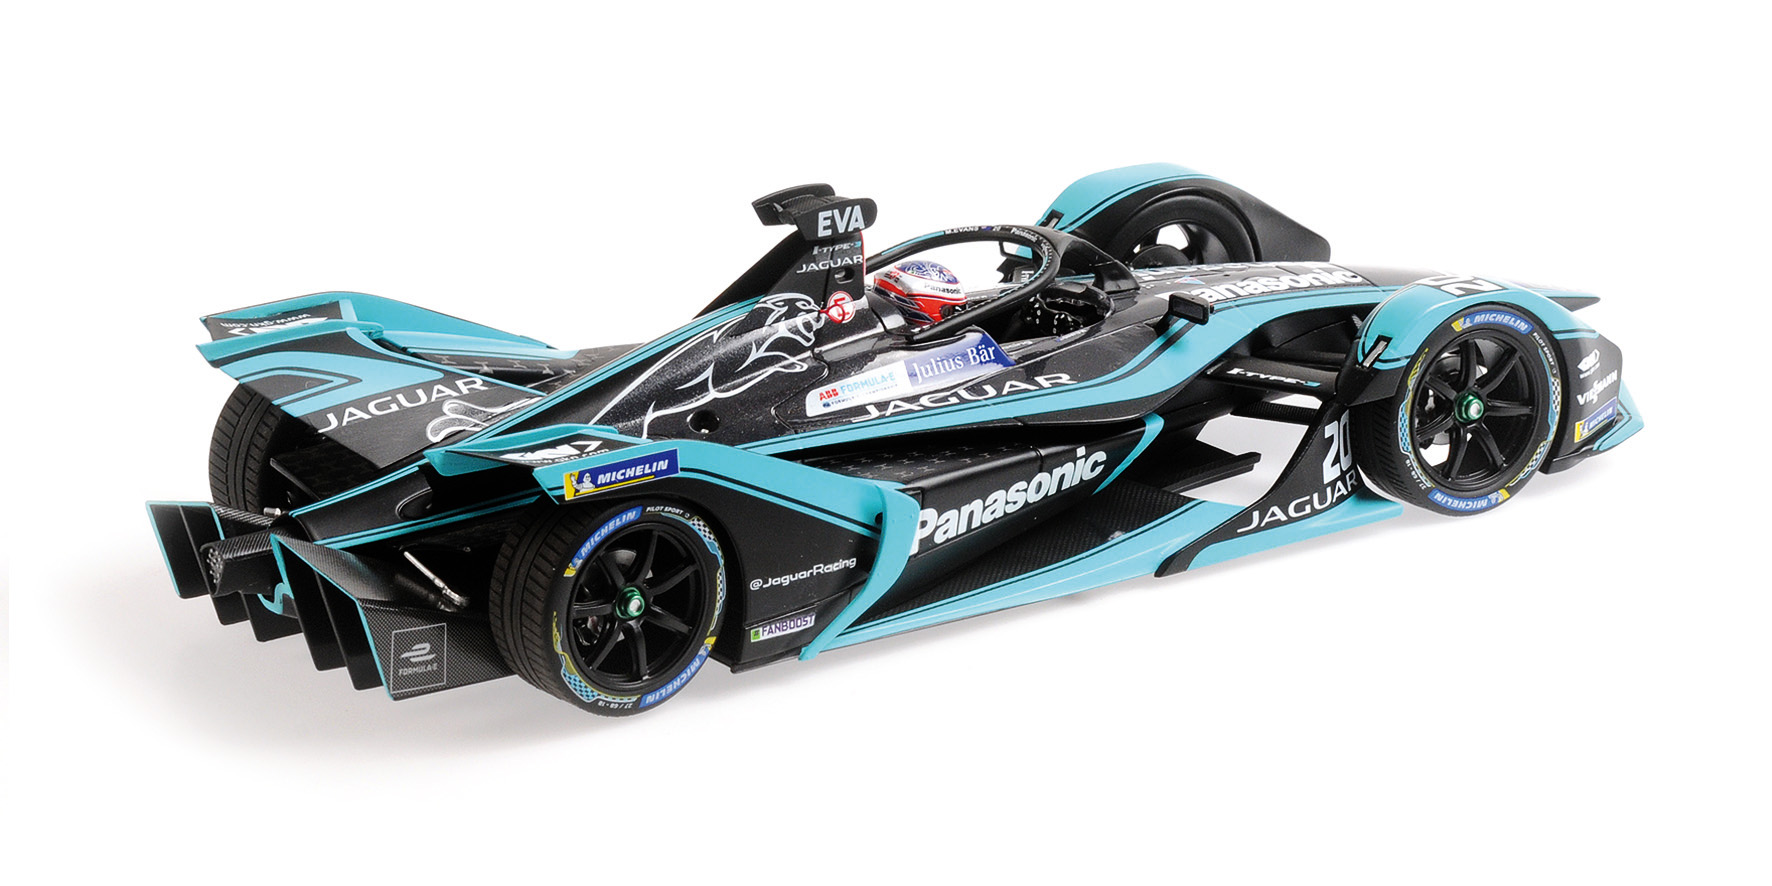 Formula e season 5 panasonic jaguar racing mitch evans minichamps 1//18